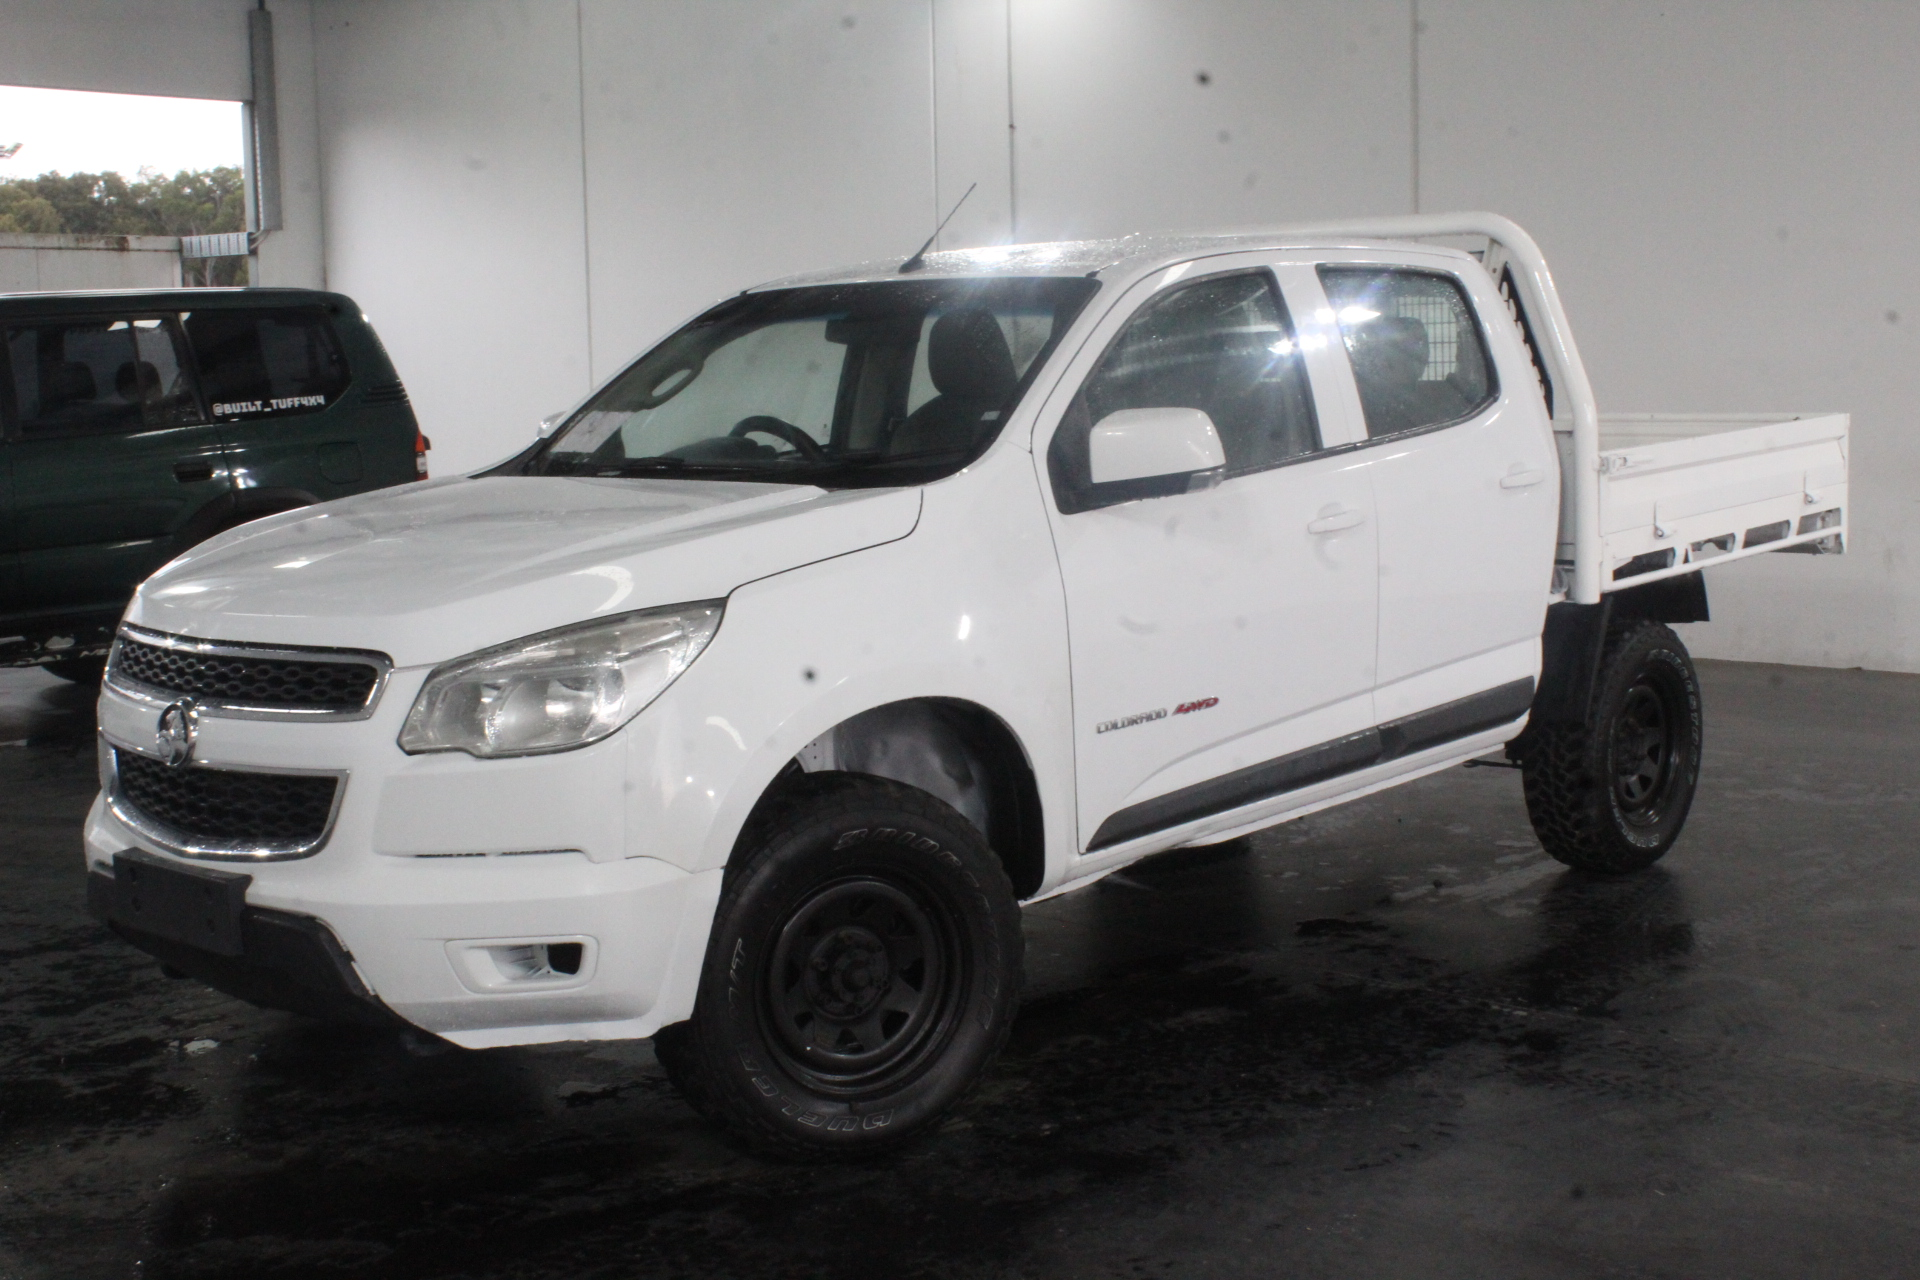 2016 Holden Colorado 4X4 LX RG Turbo Diesel Manual Crew Cab Chassis